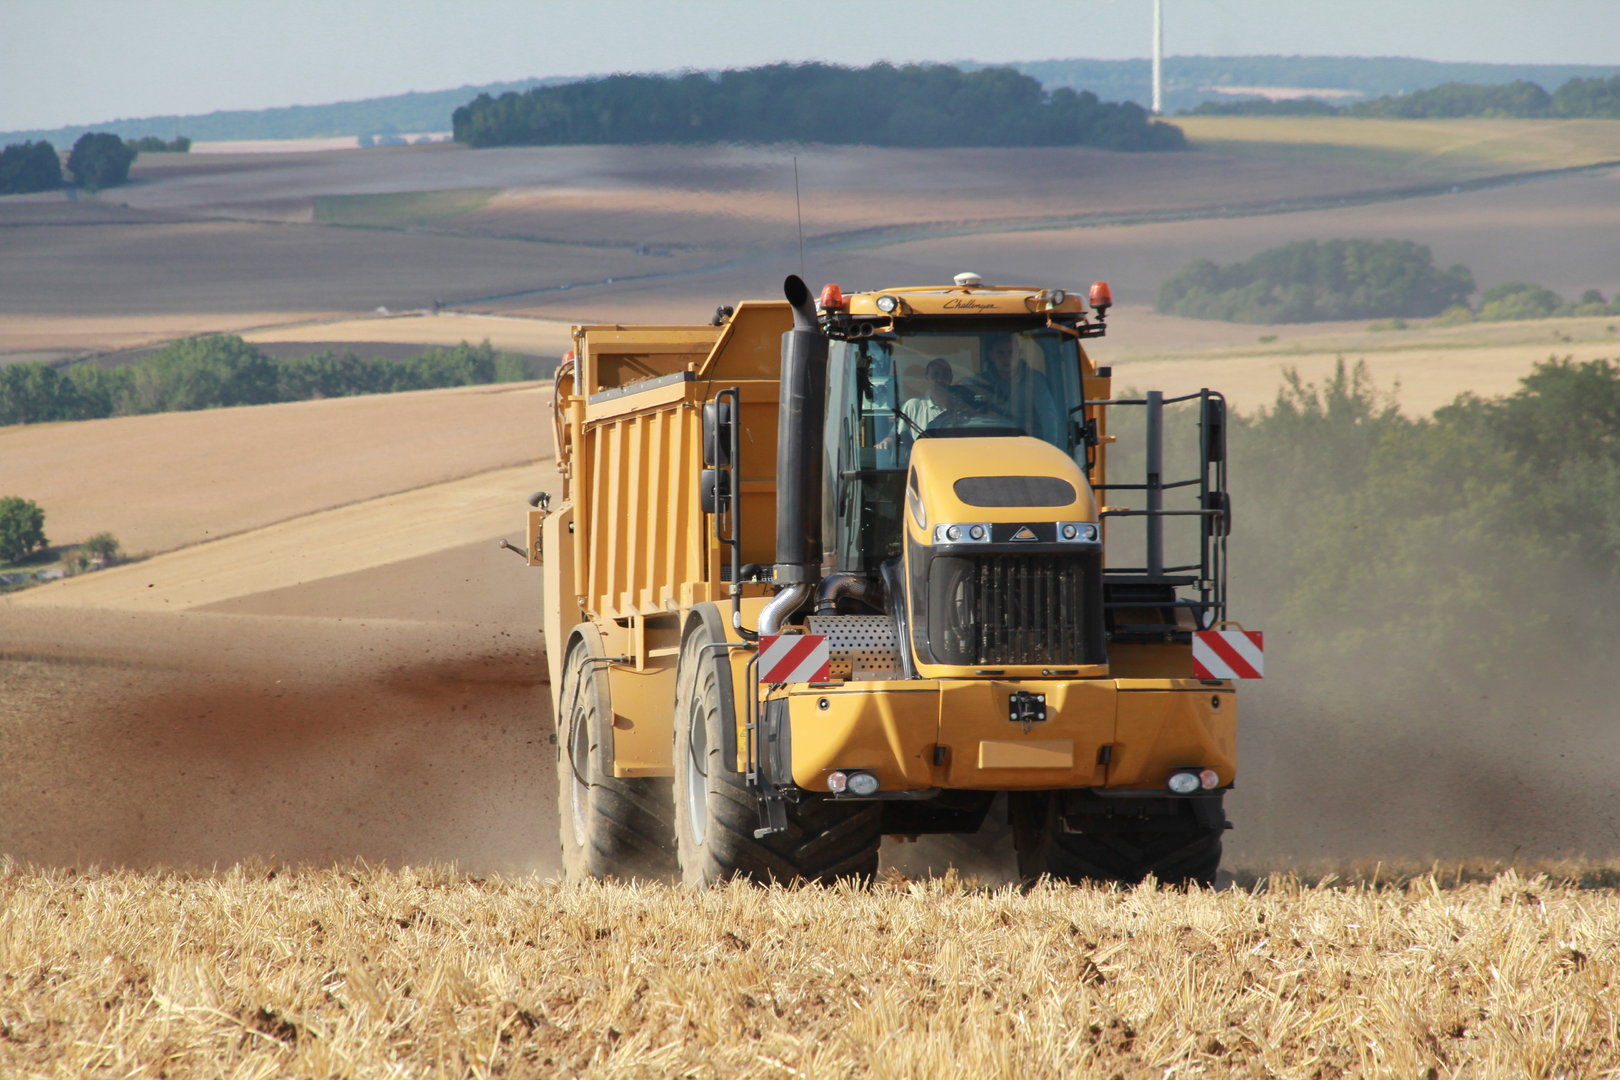 France 3 agriculture